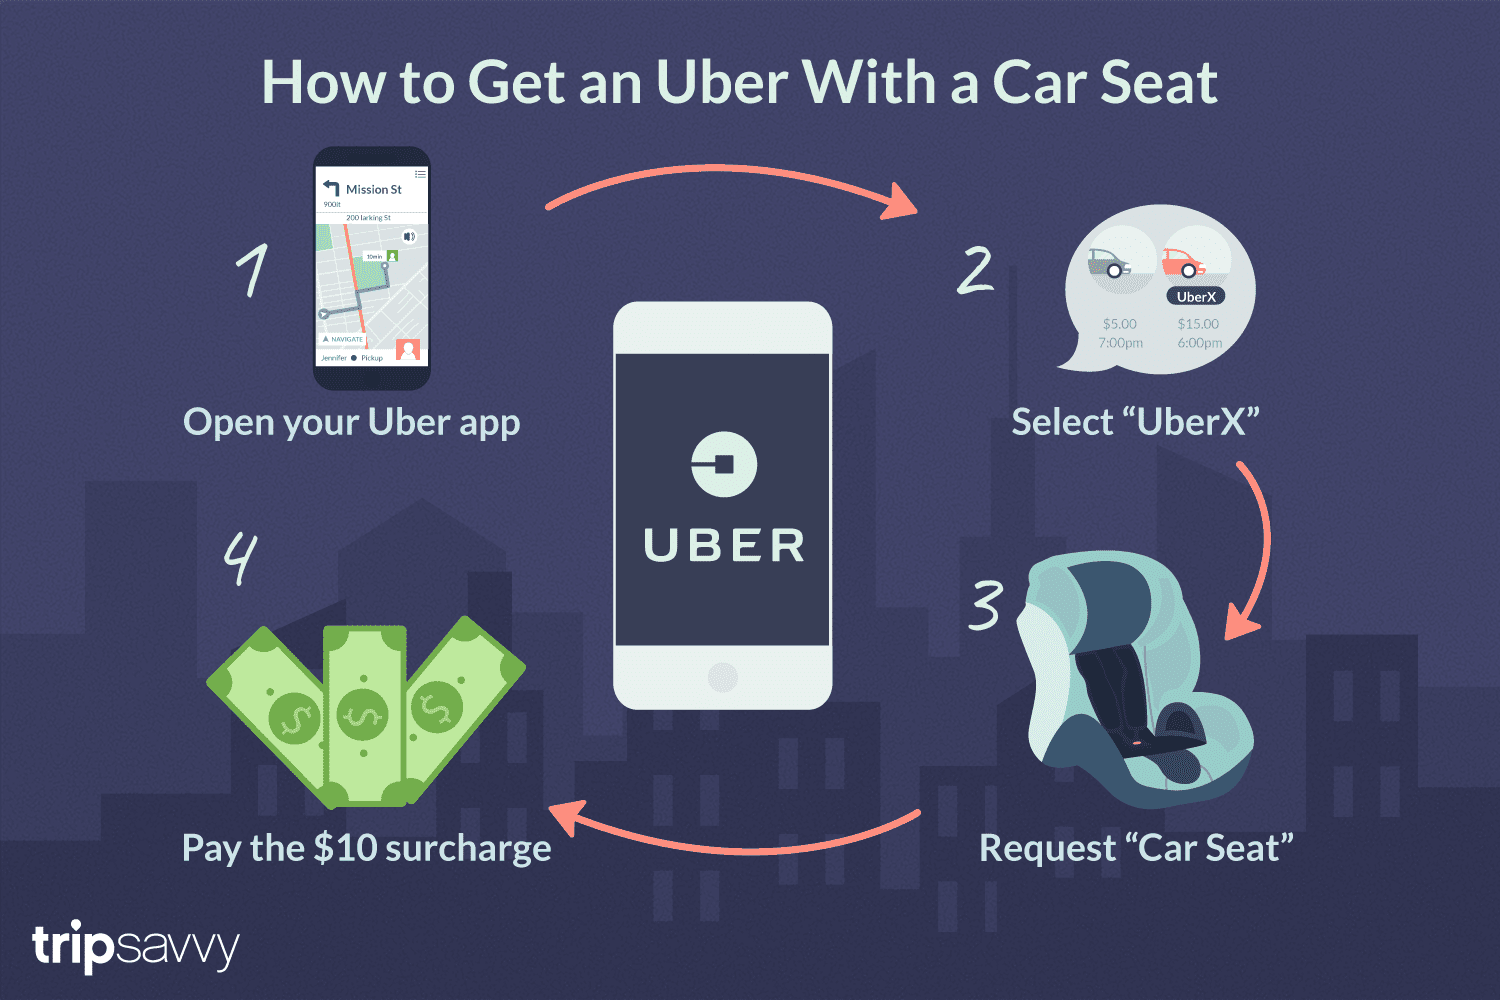 How To Request A Car Seat From Uber